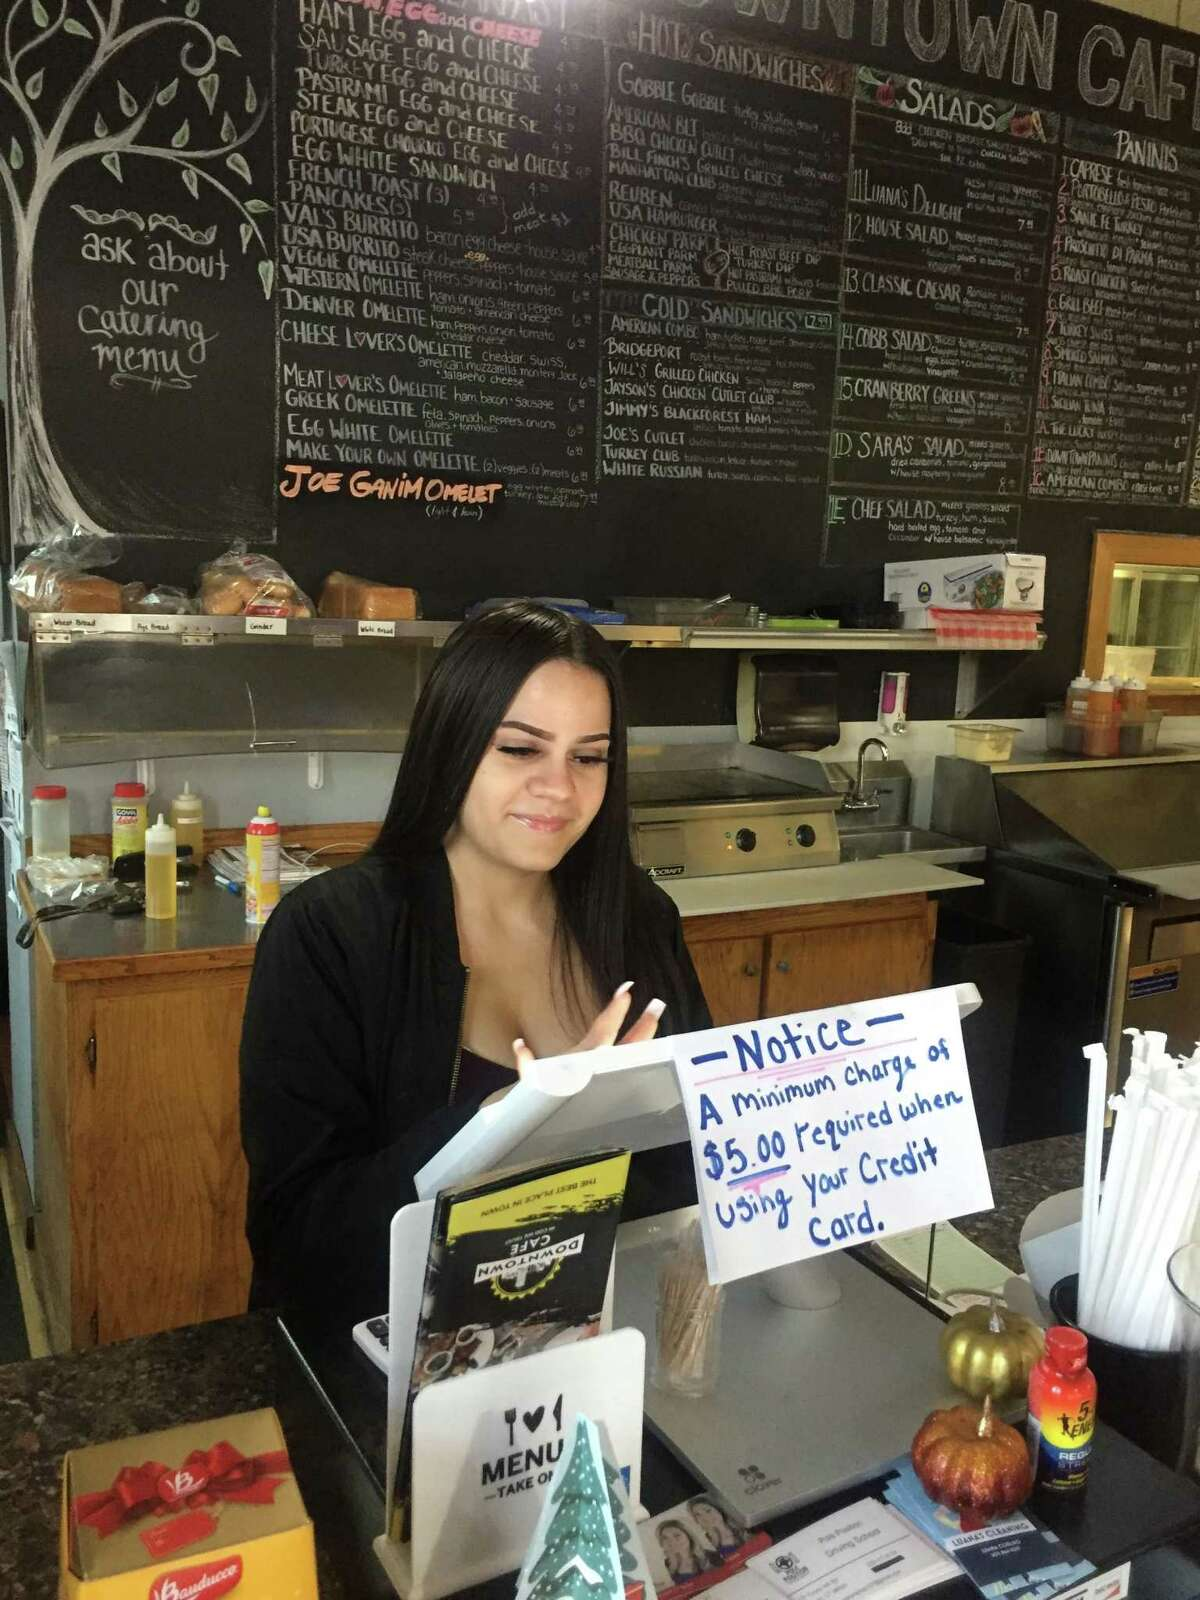 Mariah, a Work to Learn client, works the register at her internship through the program.